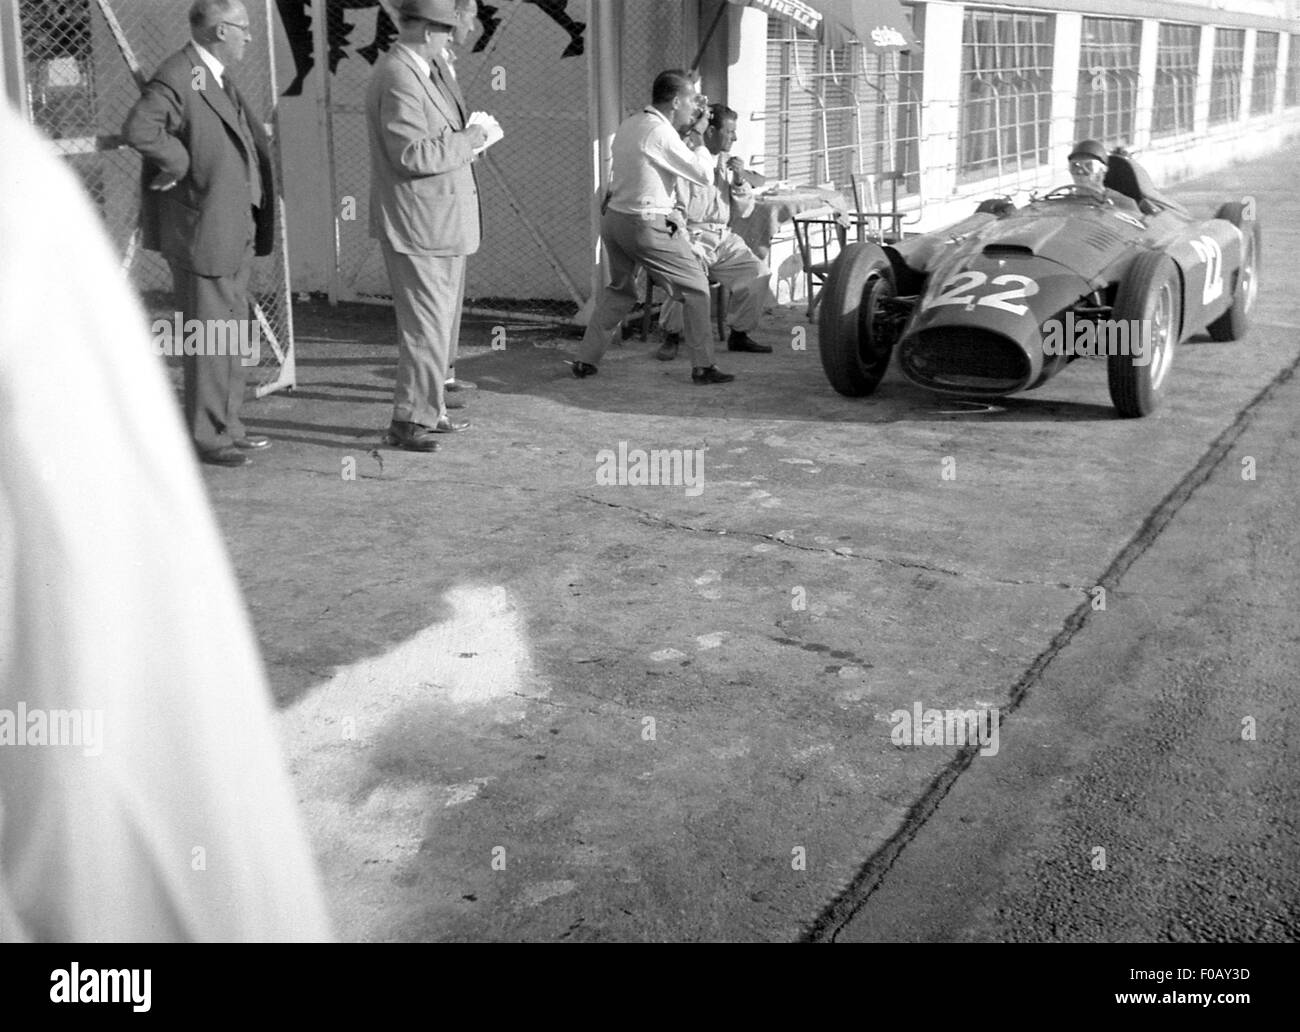 Italian GP in Monza 1956 - Stock Image